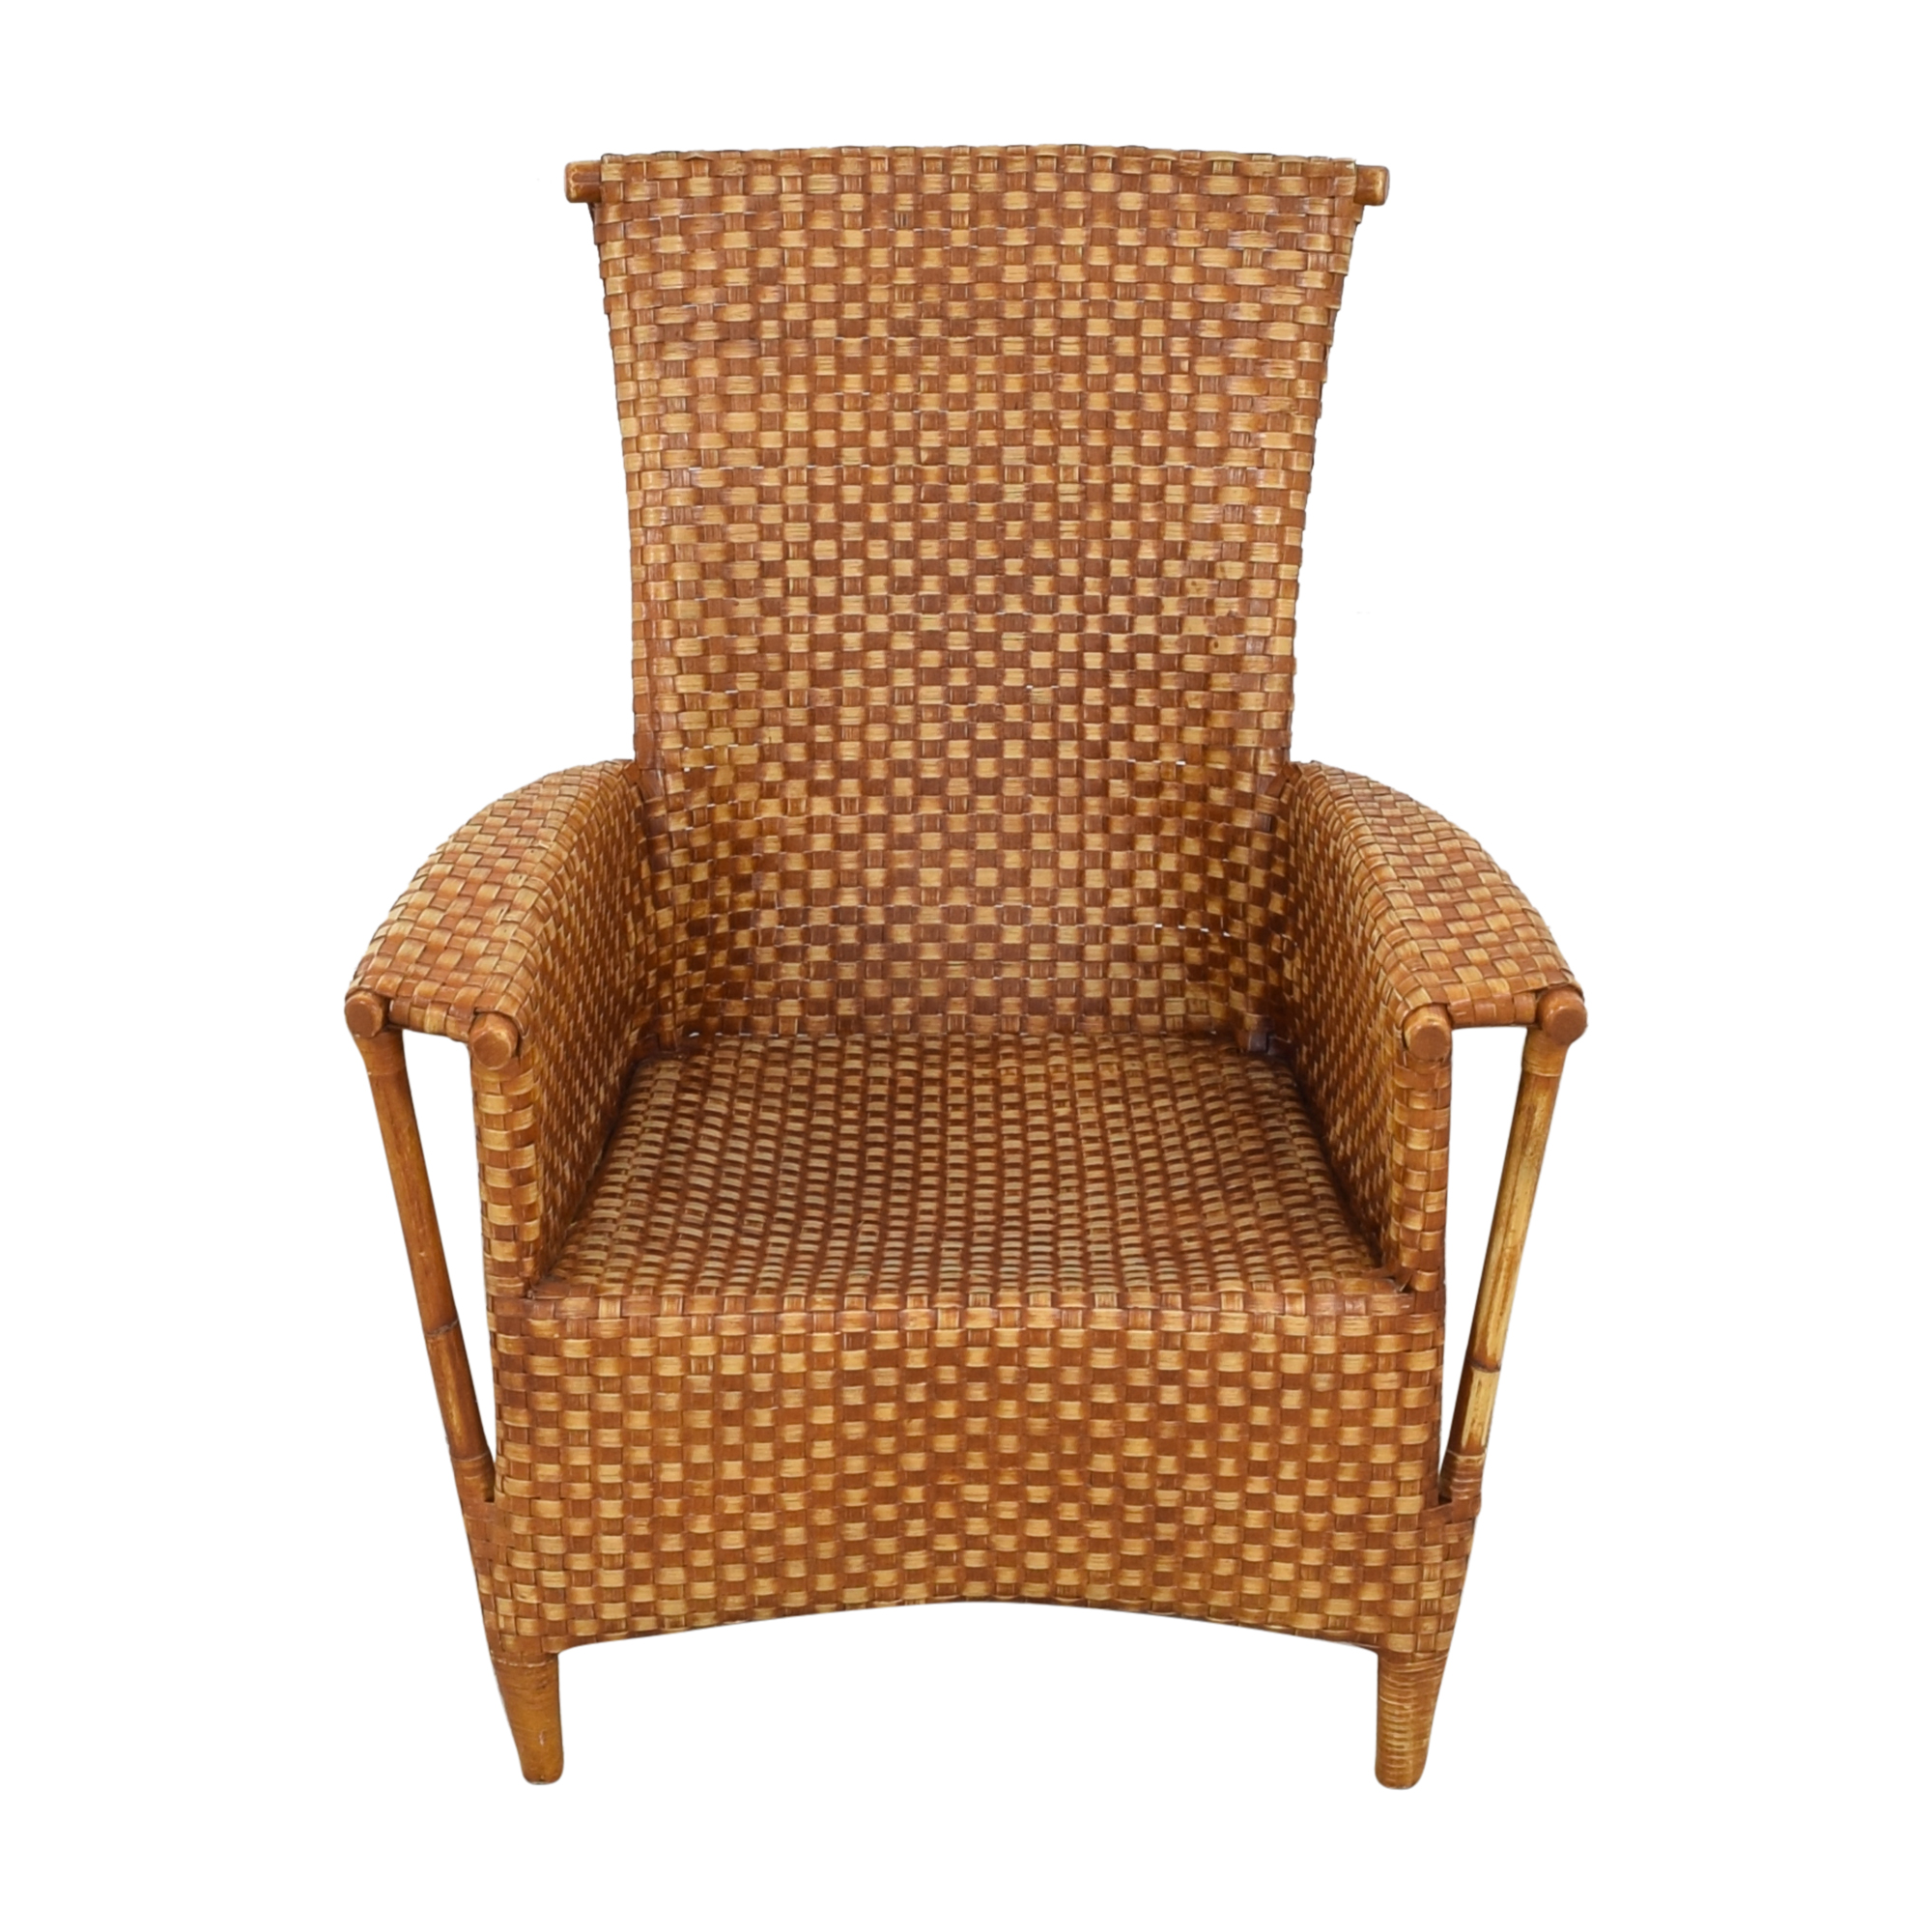 shop Crat & Barrel Wicker Chair Crate & Barrel Chairs